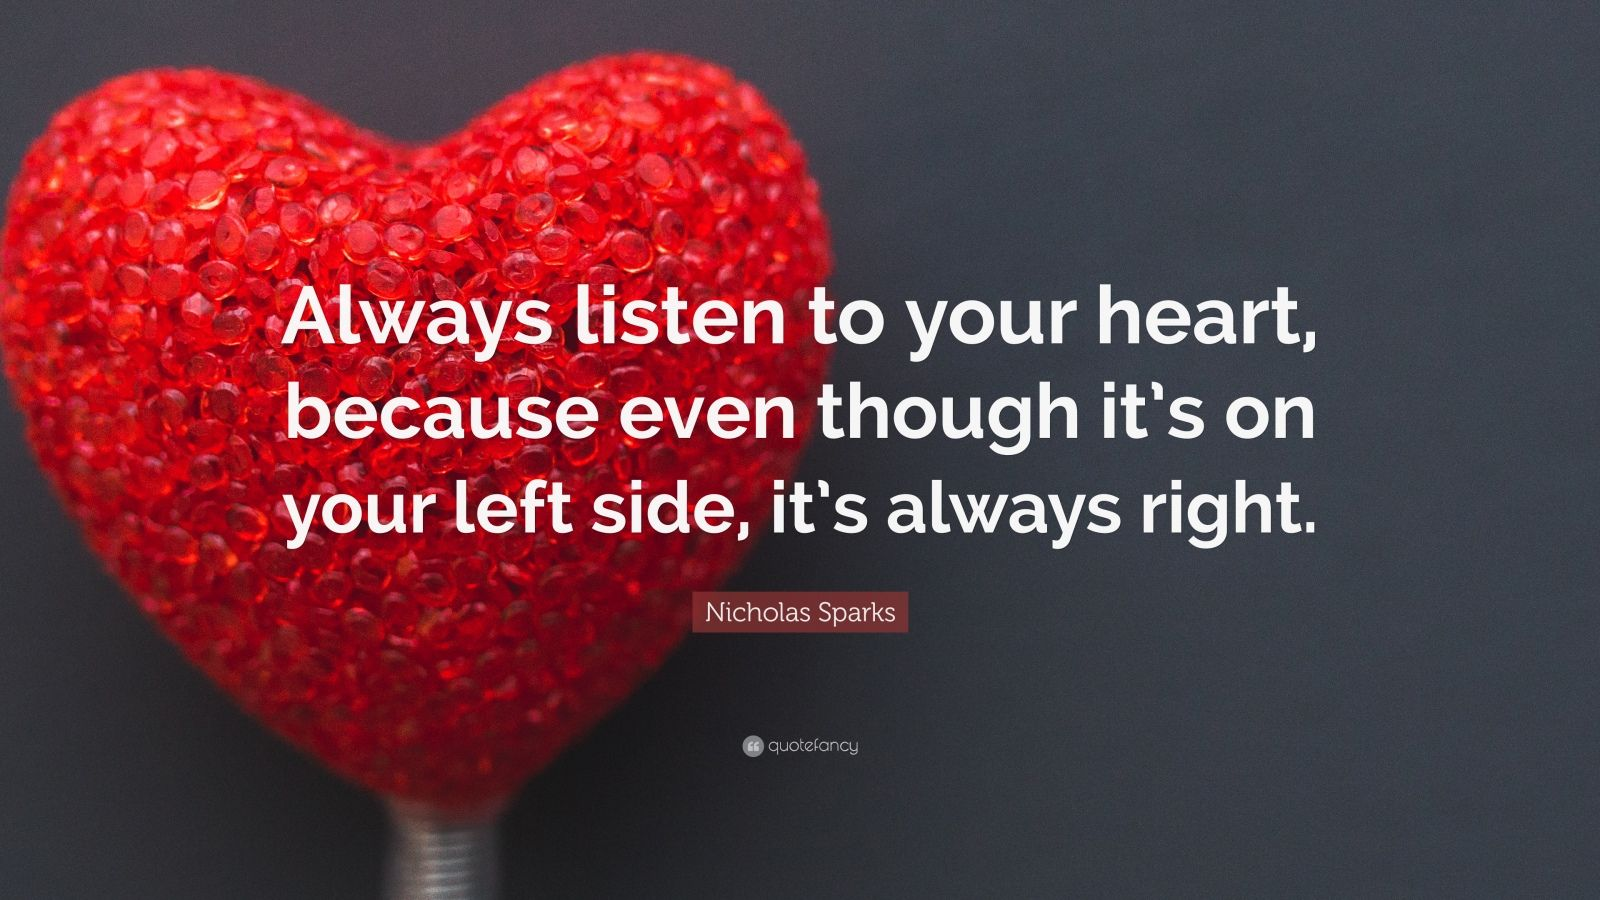 """Nicholas Sparks Quote: """"Always listen to your heart, because even though it's on your left side, it's always right."""""""